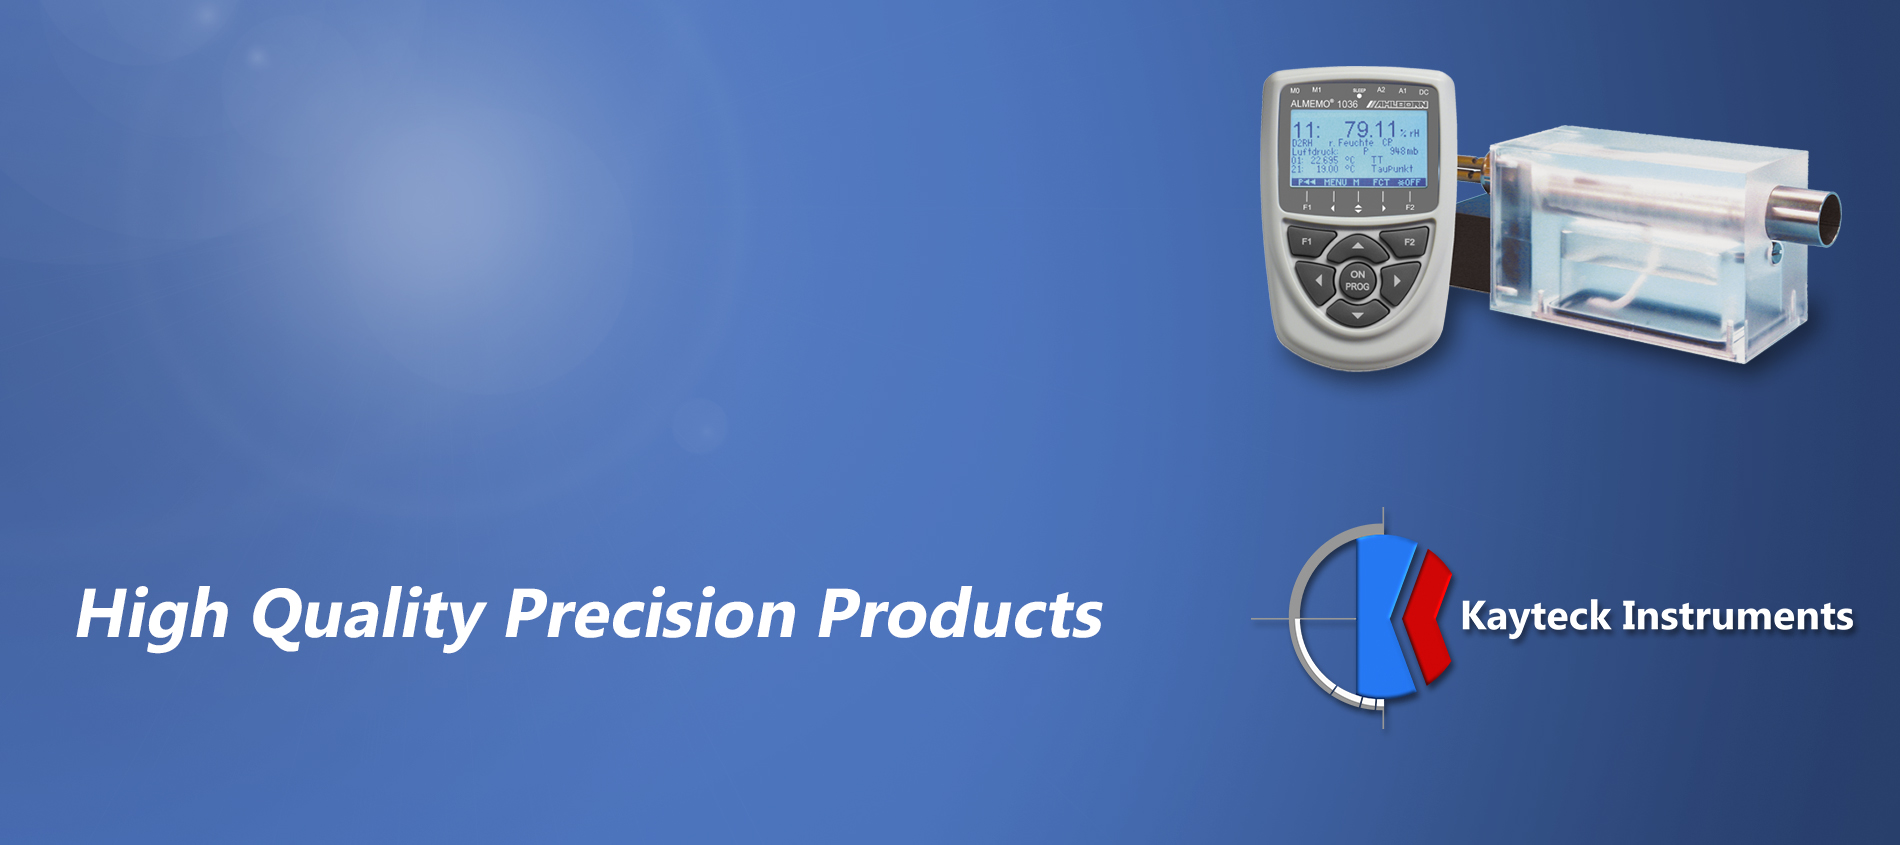 Kayteck Instruments - High Quality Precision Products